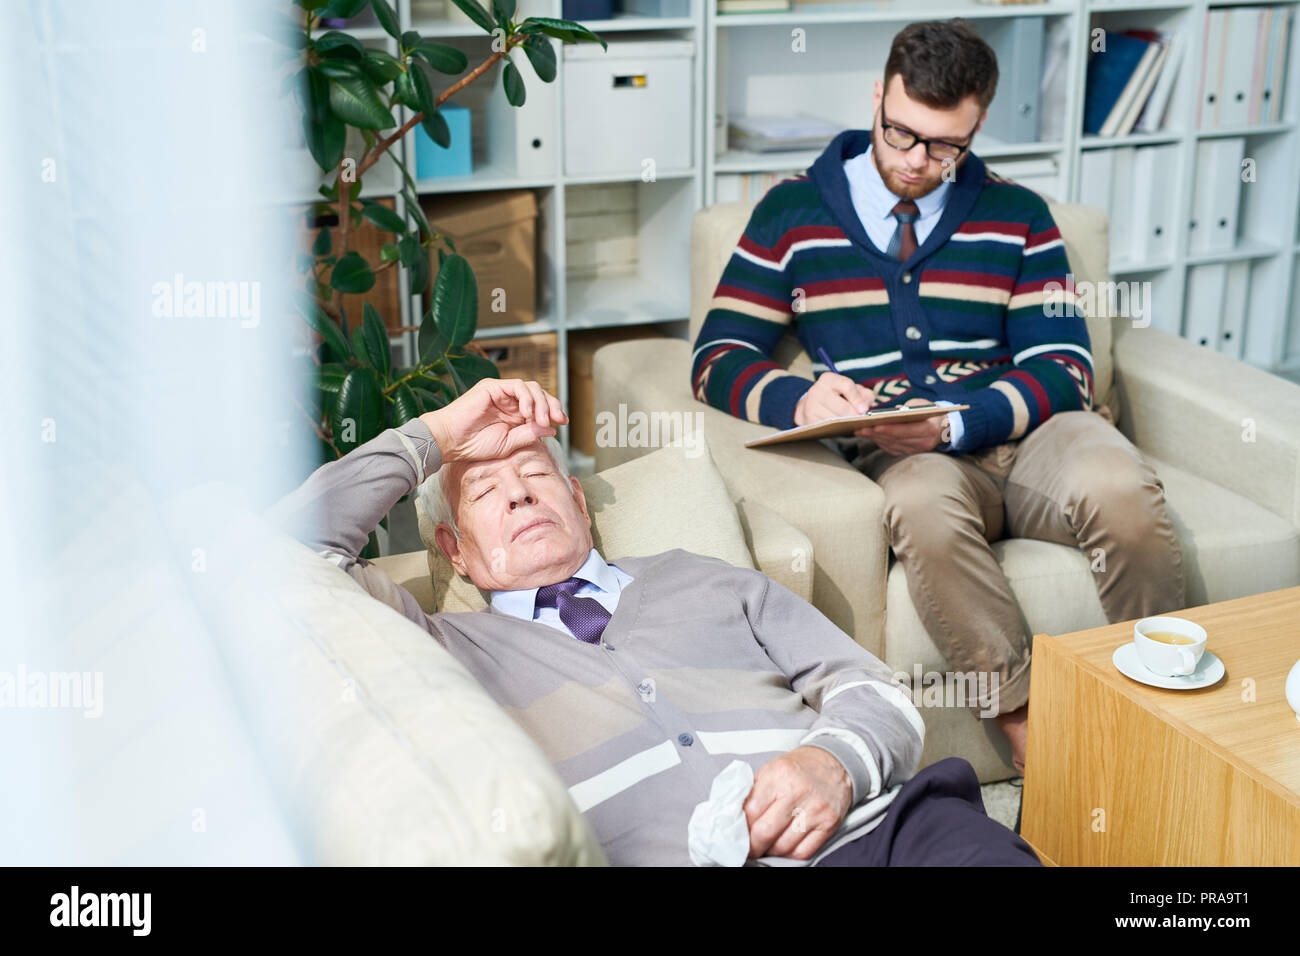 Elderly Man in Therapy - Stock Image